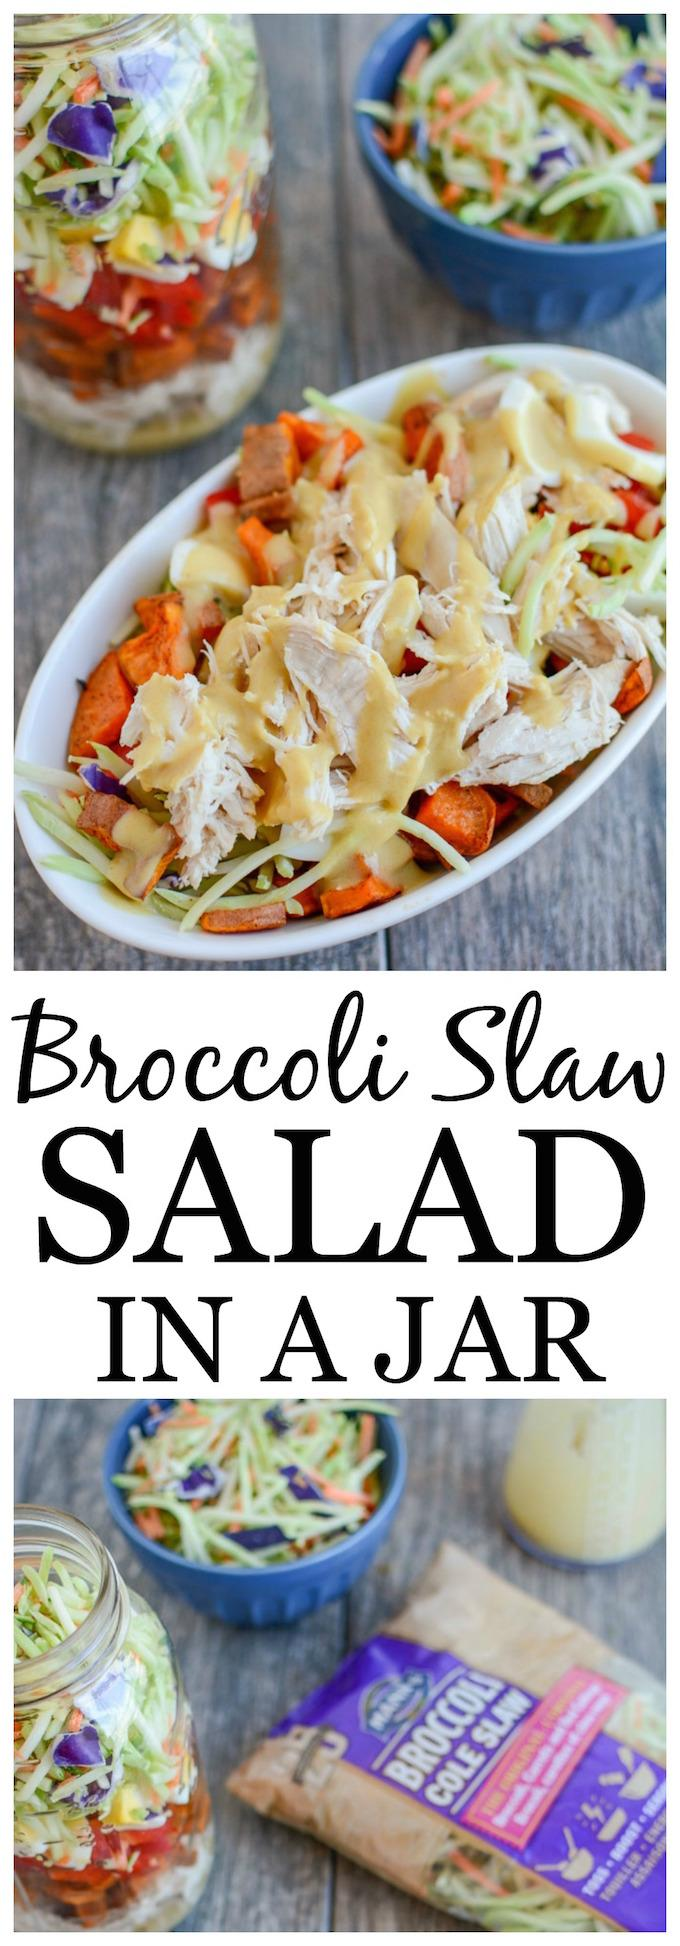 This Broccoli Slaw Salad in a Jar is the perfect packable lunch! Transform leftover chicken into an easy, healthy lunch option that can be prepped ahead of time for a busy week!